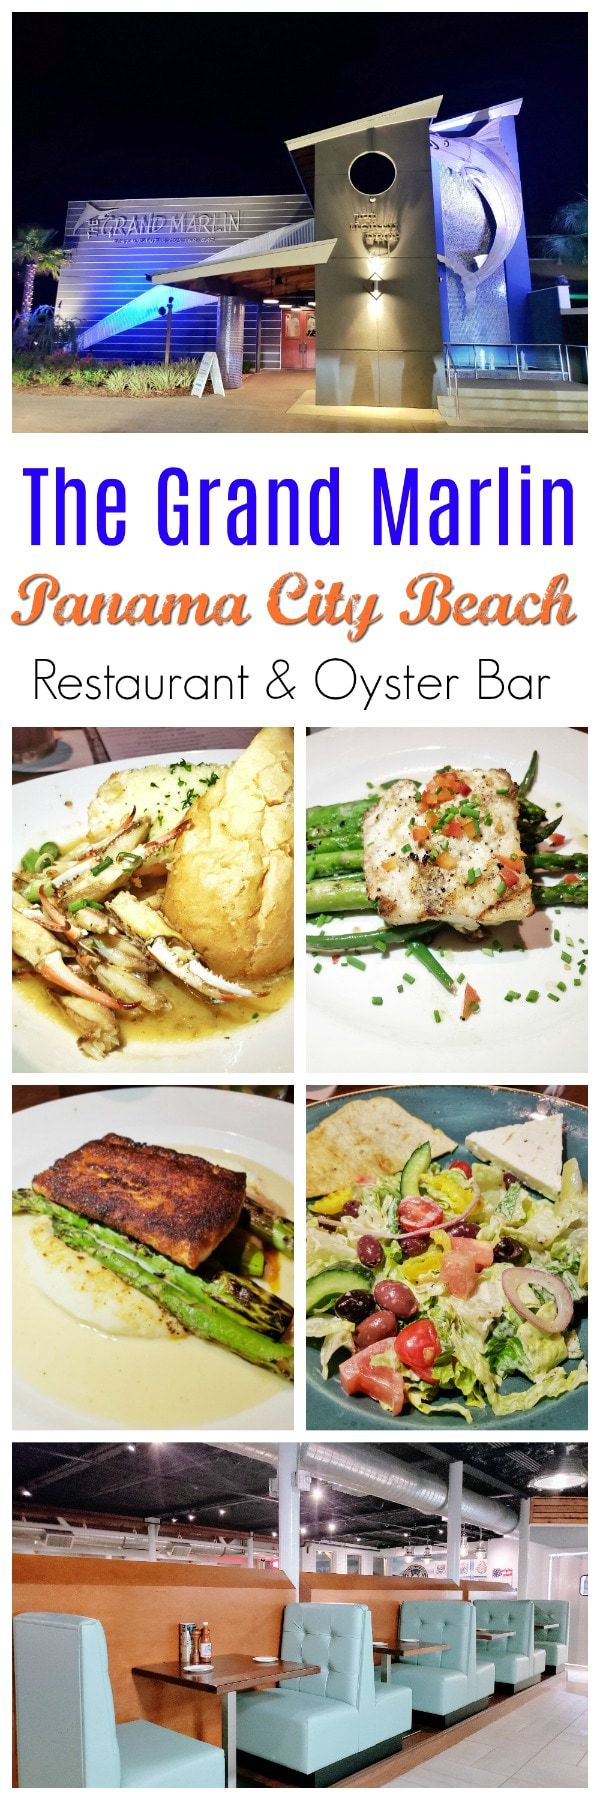 "The Grand Marlin: If you are looking for a restaurant that truly puts the ""fresh"" in fresh seafood, The Grand Marlin Restaurant & Oyster Bar is where you need to go.It is the perfect melting pot for tourists and locals to all come together and enjoy the excellent flavors of the perfectly cooked food. #GrandMarlin #PanamaCityBeach"